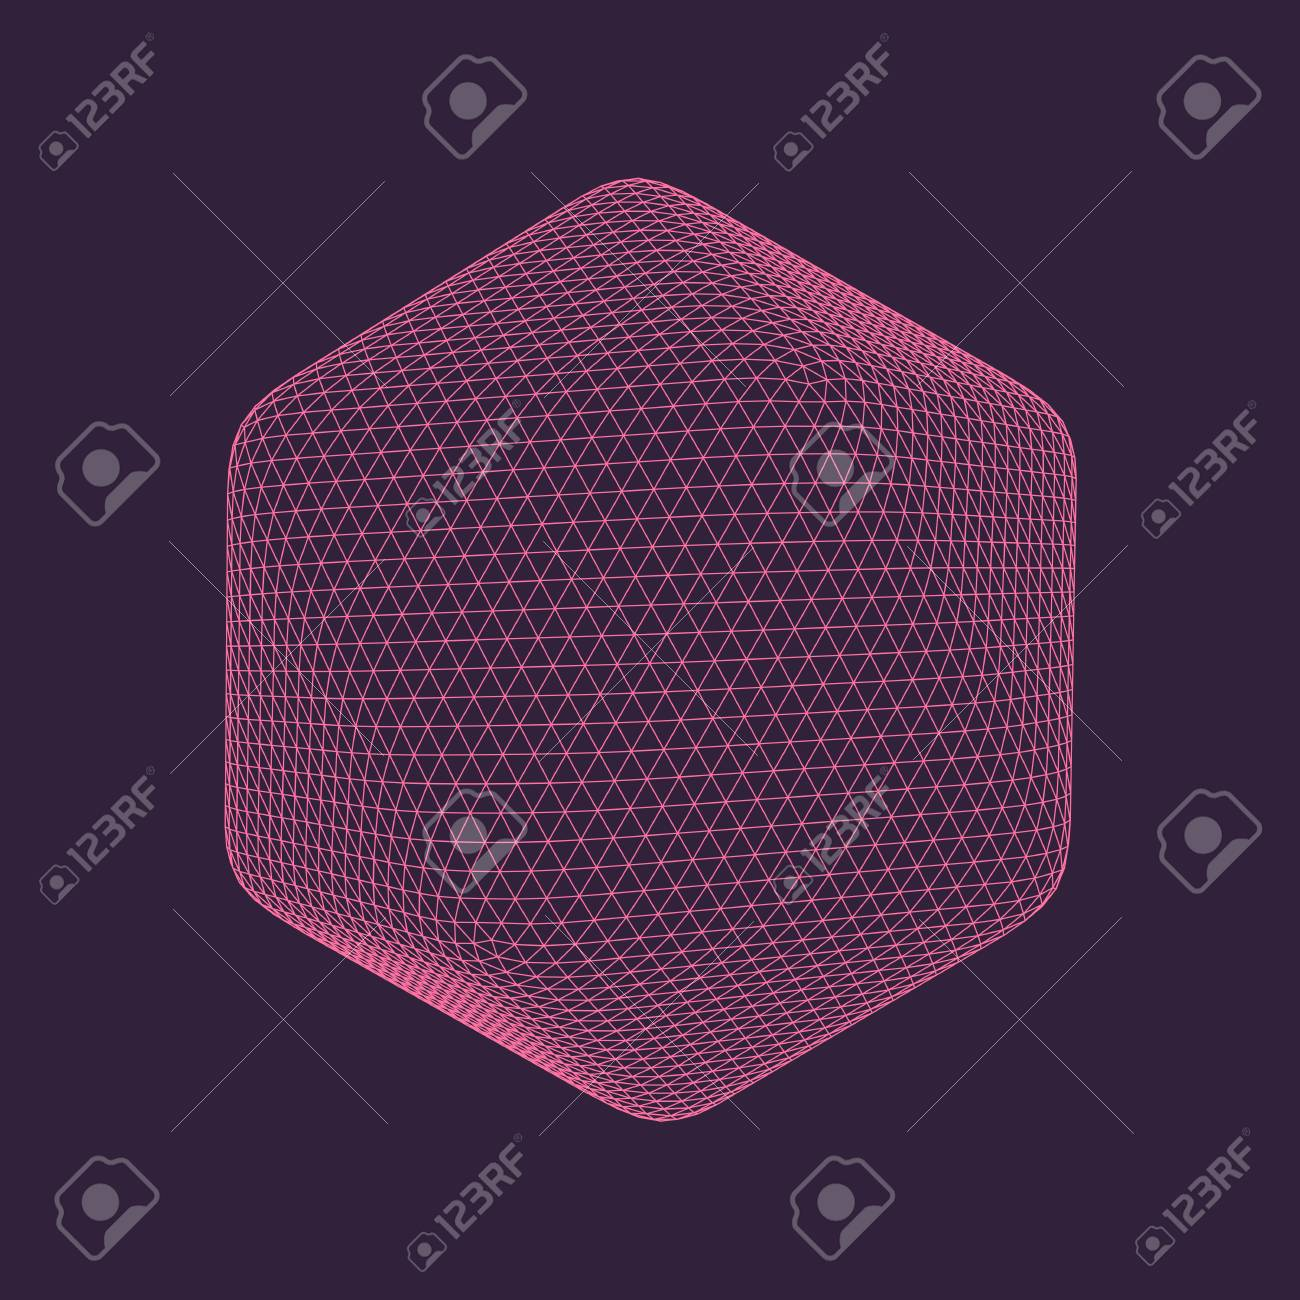 Vector illustration of Icosahedron, regular platonic solid figure. Three-dimensional transparent object. Abstract polygonal shape and simple geometric form. Isolated on colored background. - 93080693